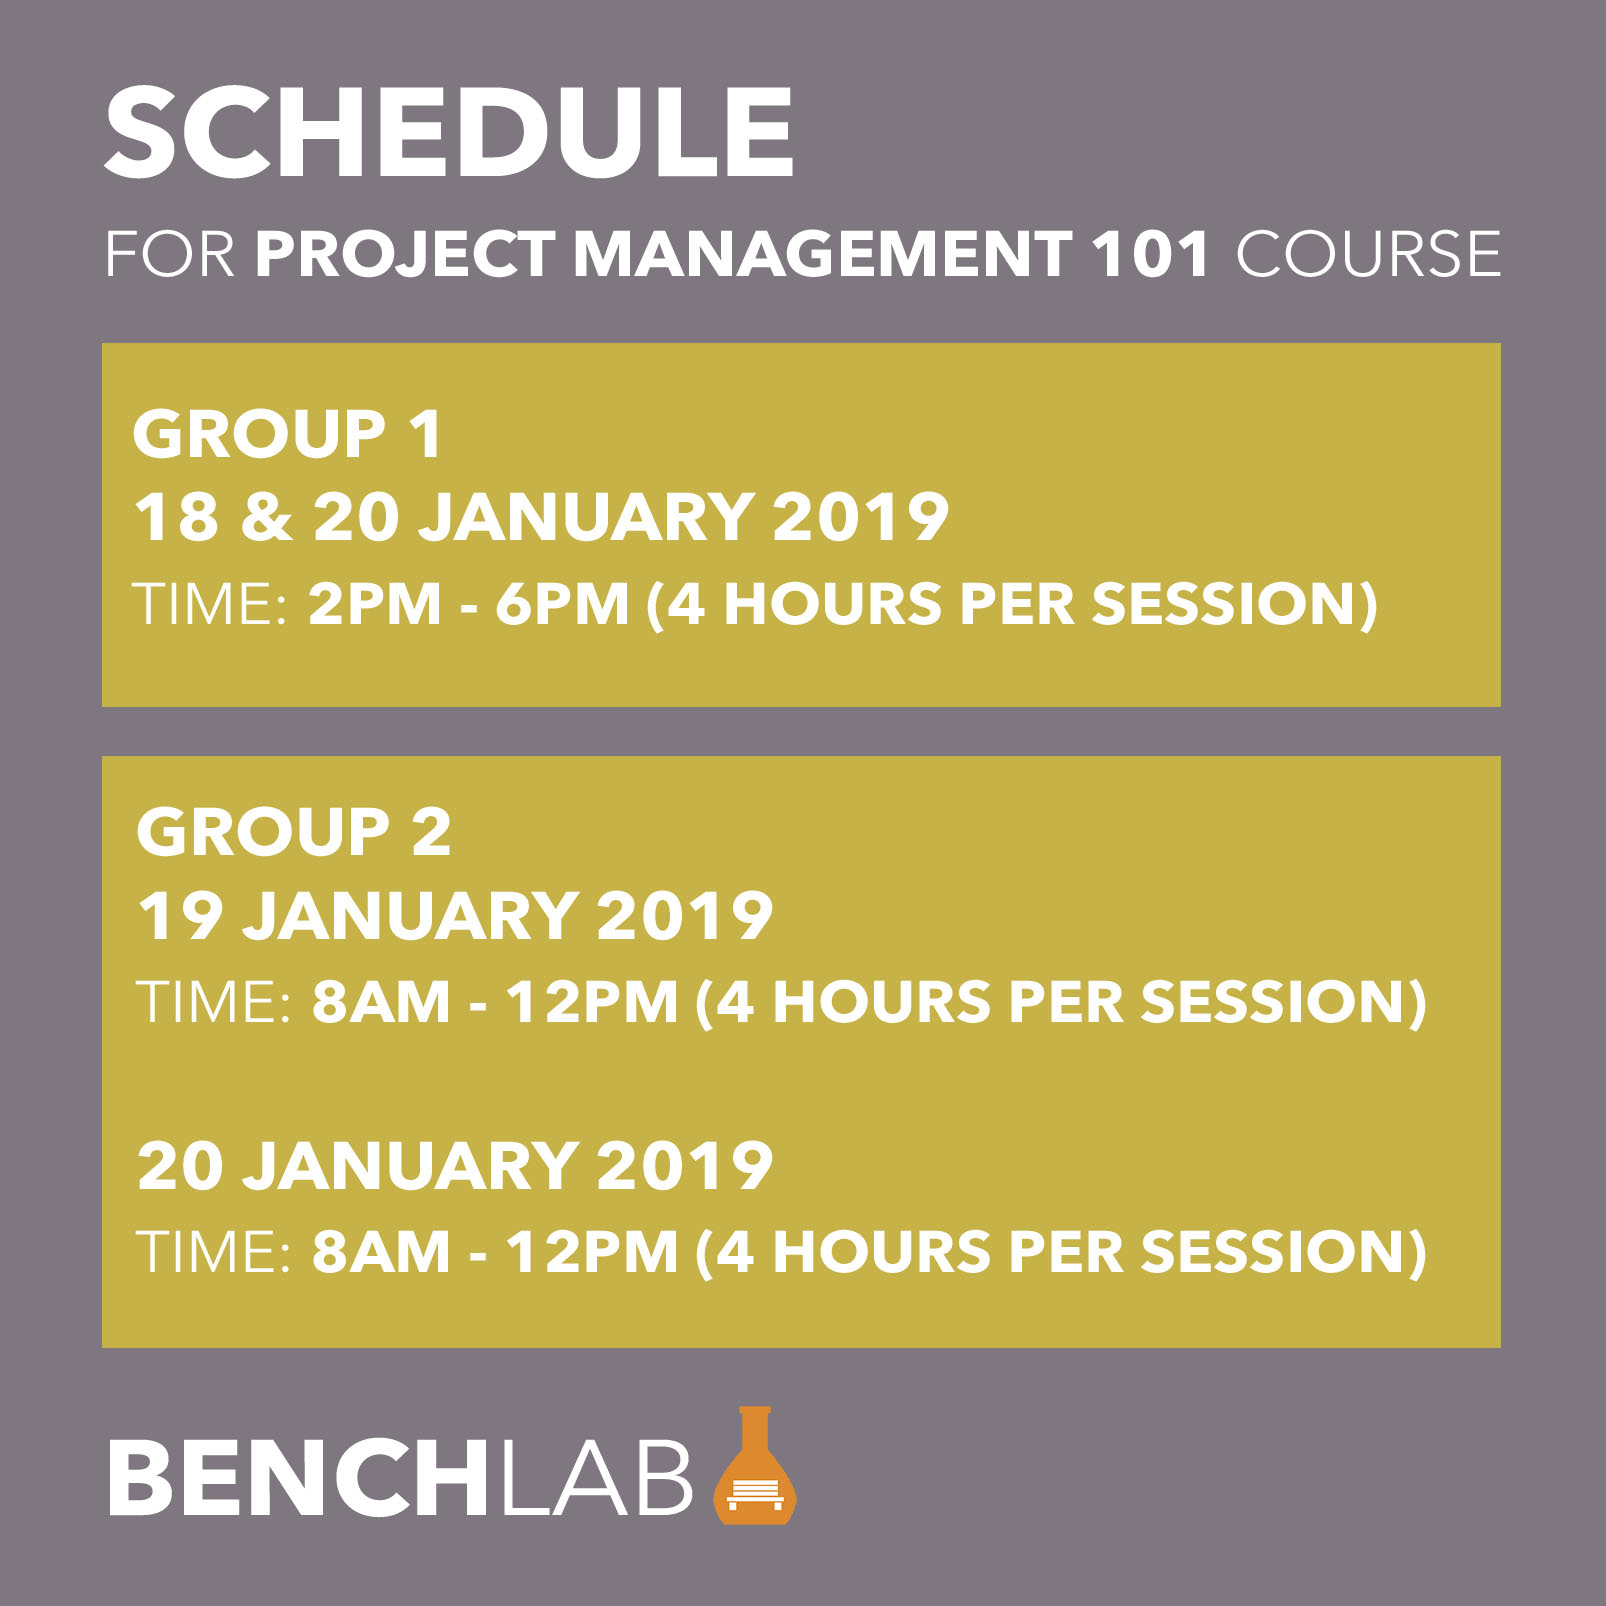 IG - Project Management 101 Schedule.jpg